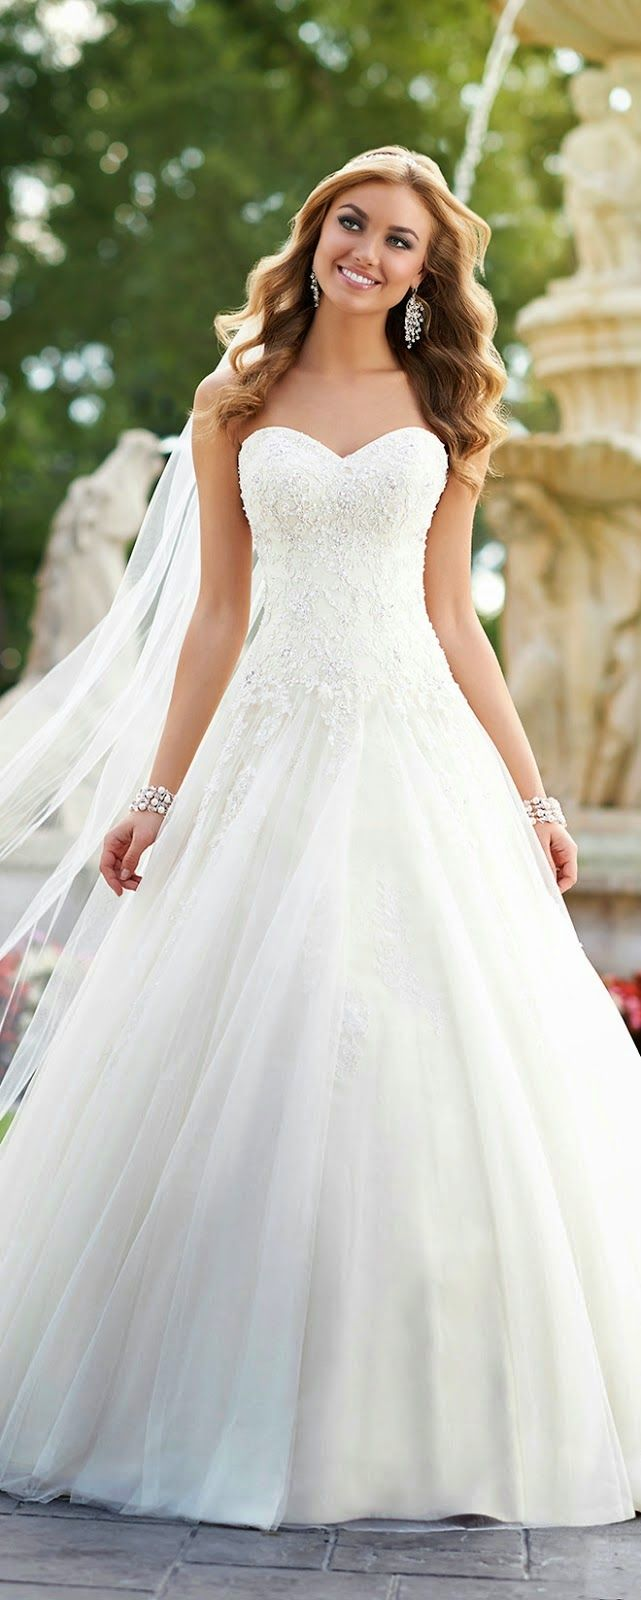 Best Wedding Dresses of 2014 | bellethemagazine.com | wedding ...